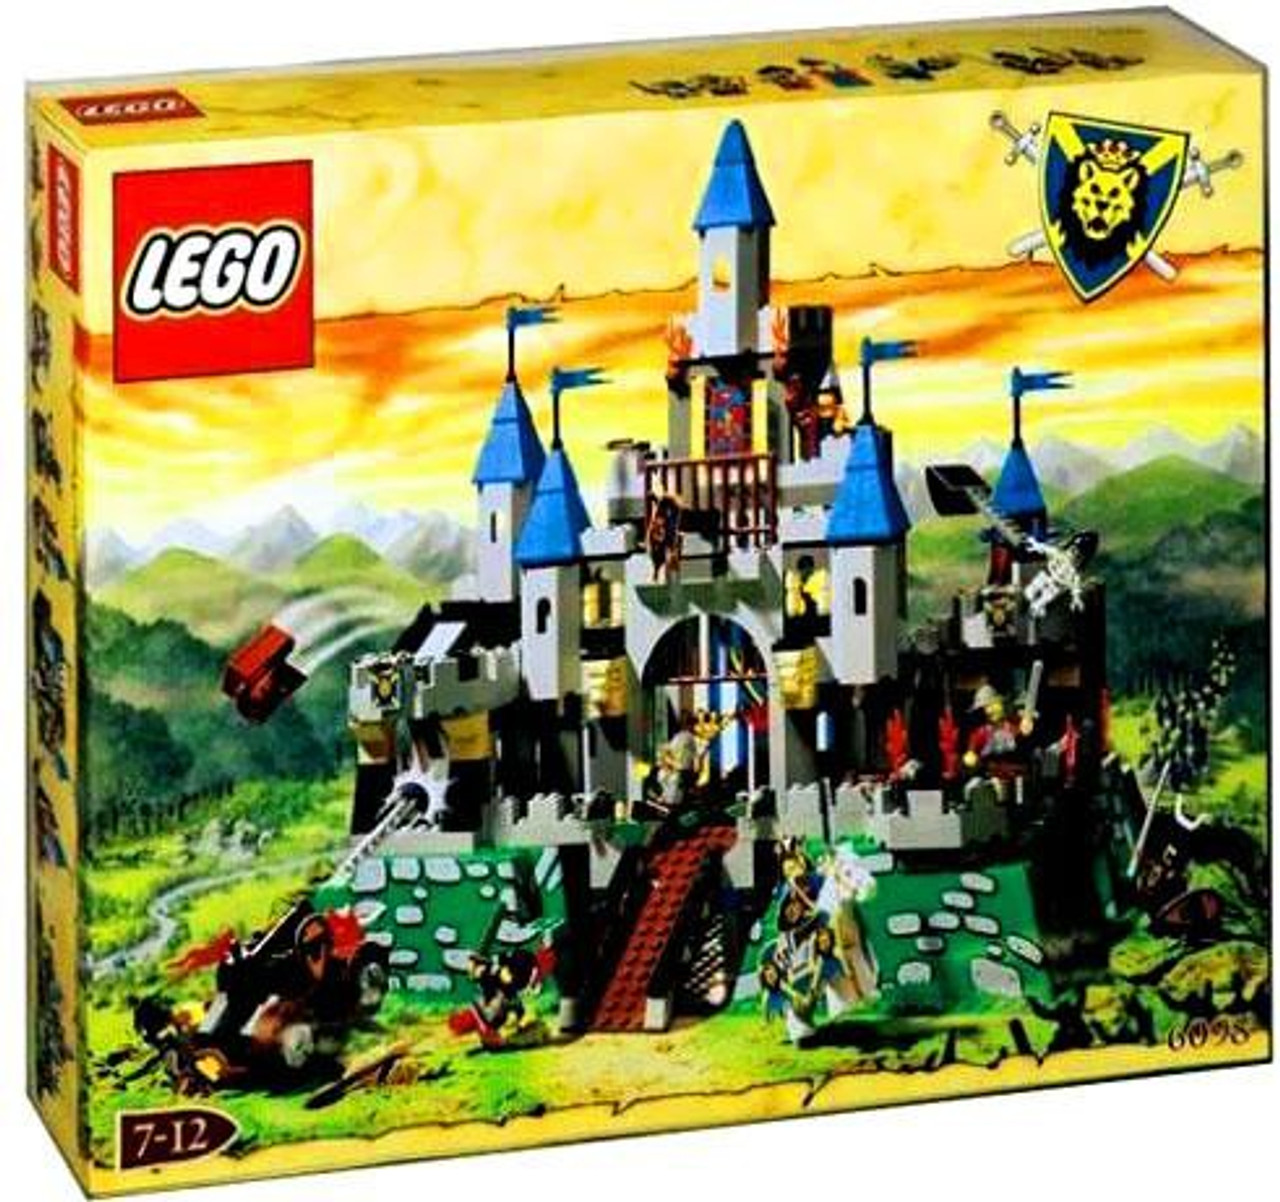 LEGO Knights Kingdom King Leo's Castle Set #6098